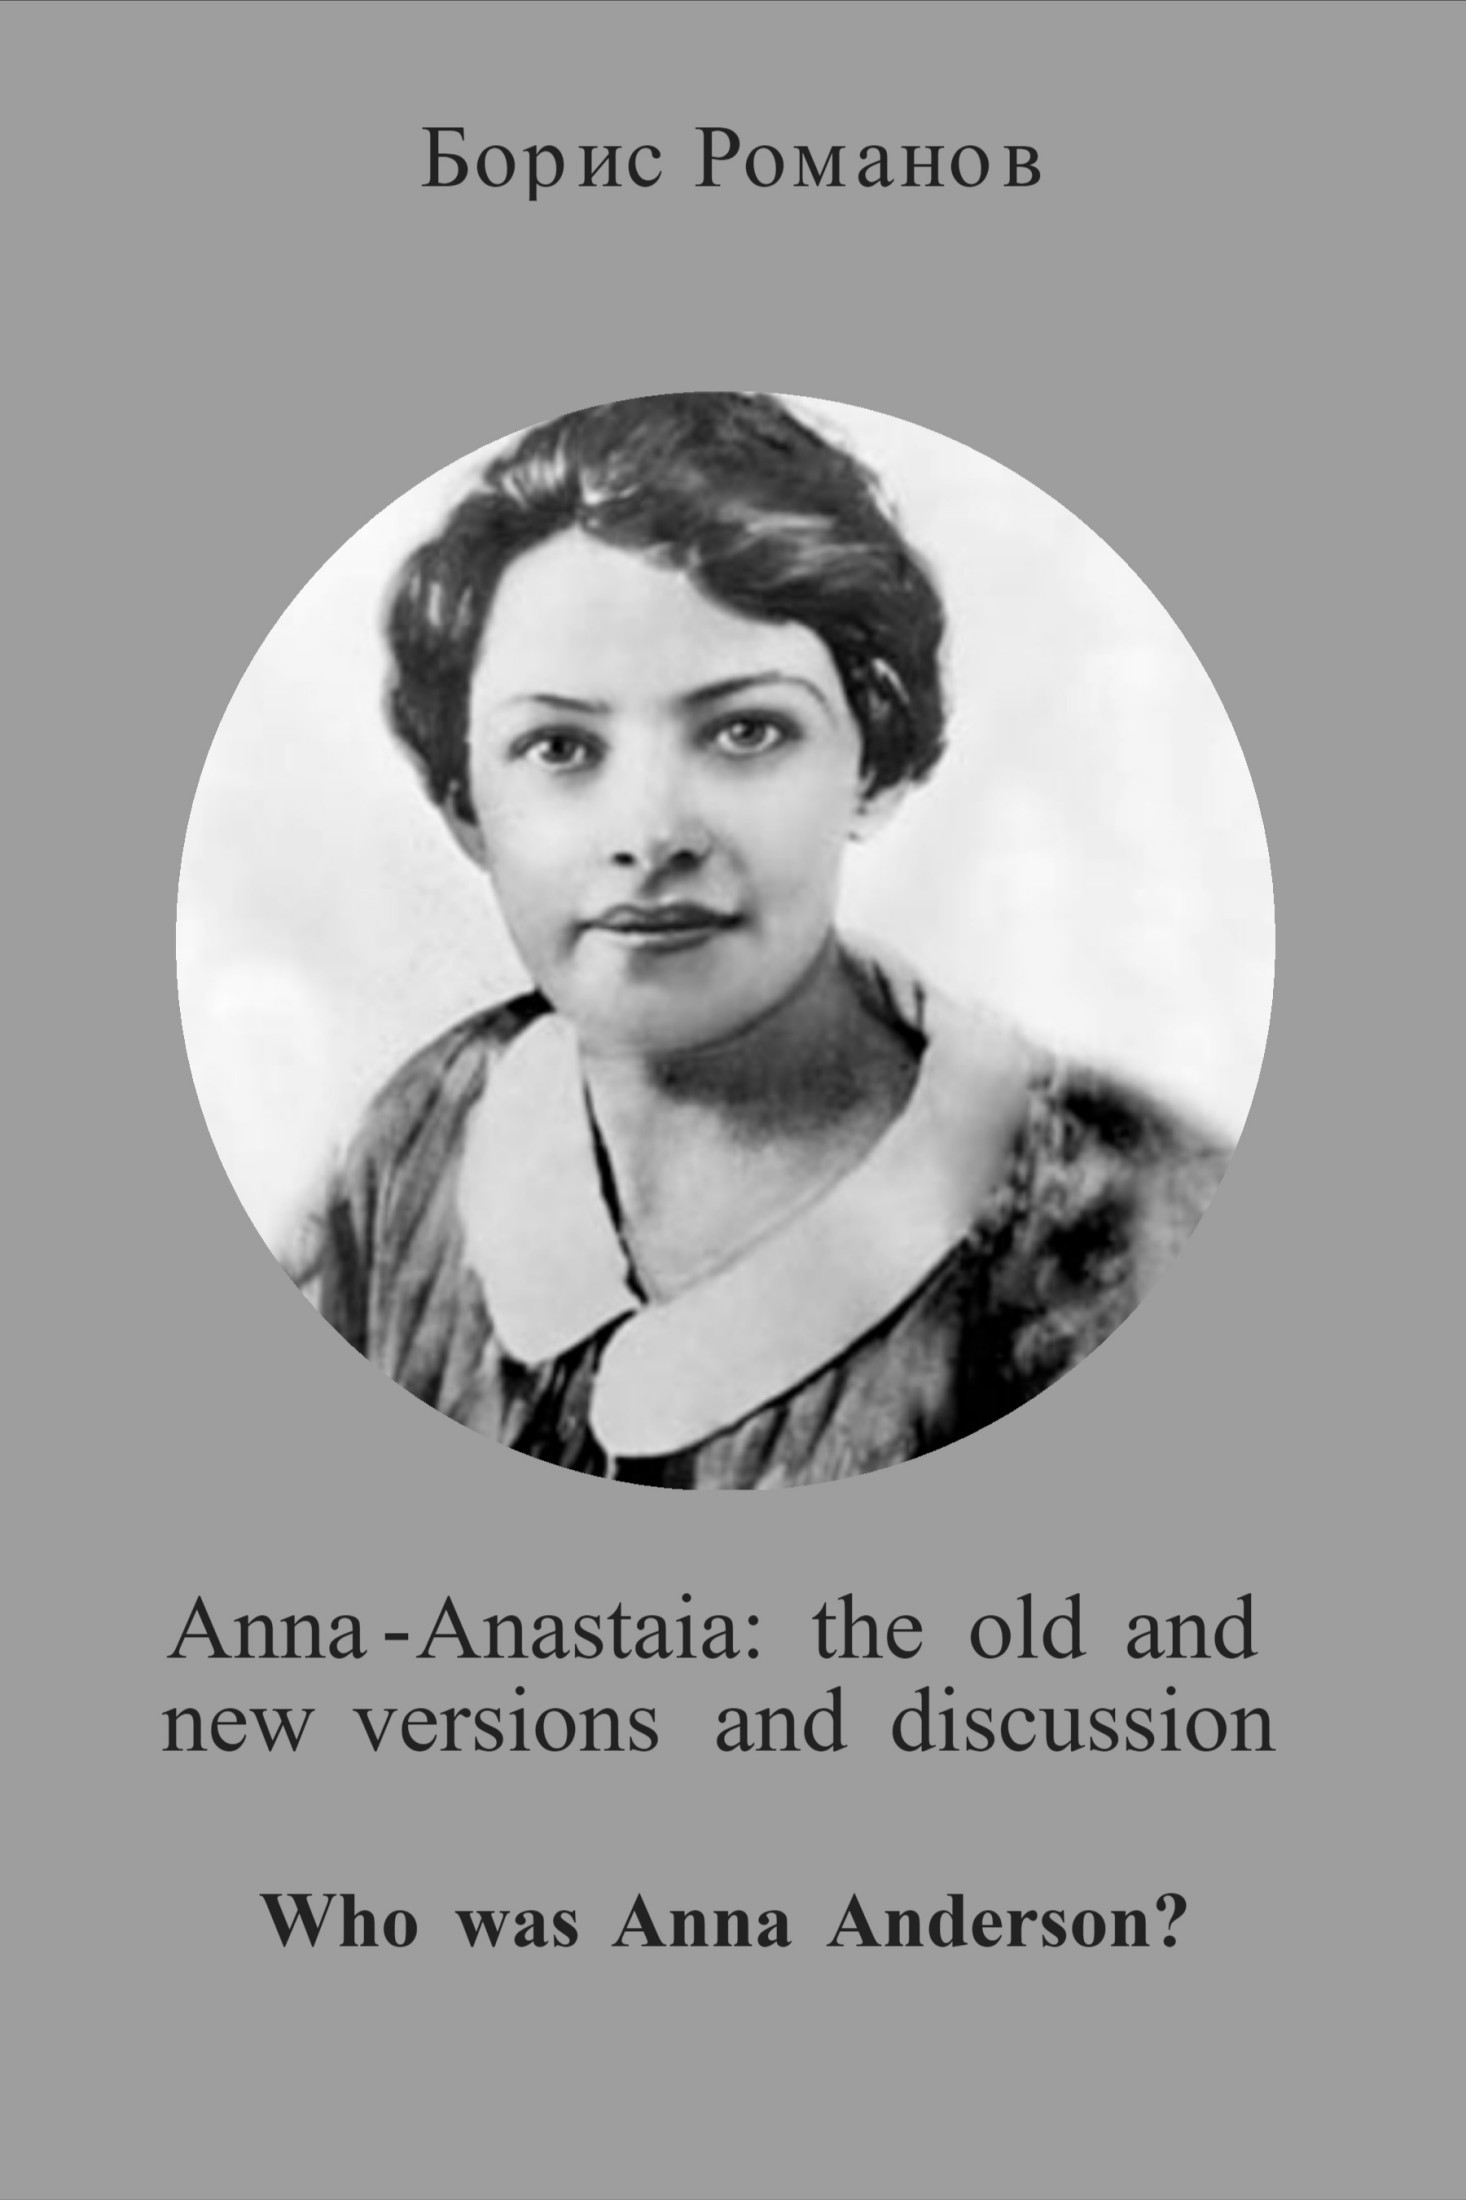 Борис Романов Anna-Anastaia: the old and new versions and discussion anastasia novykh predictions of the future and truth about the past and the present